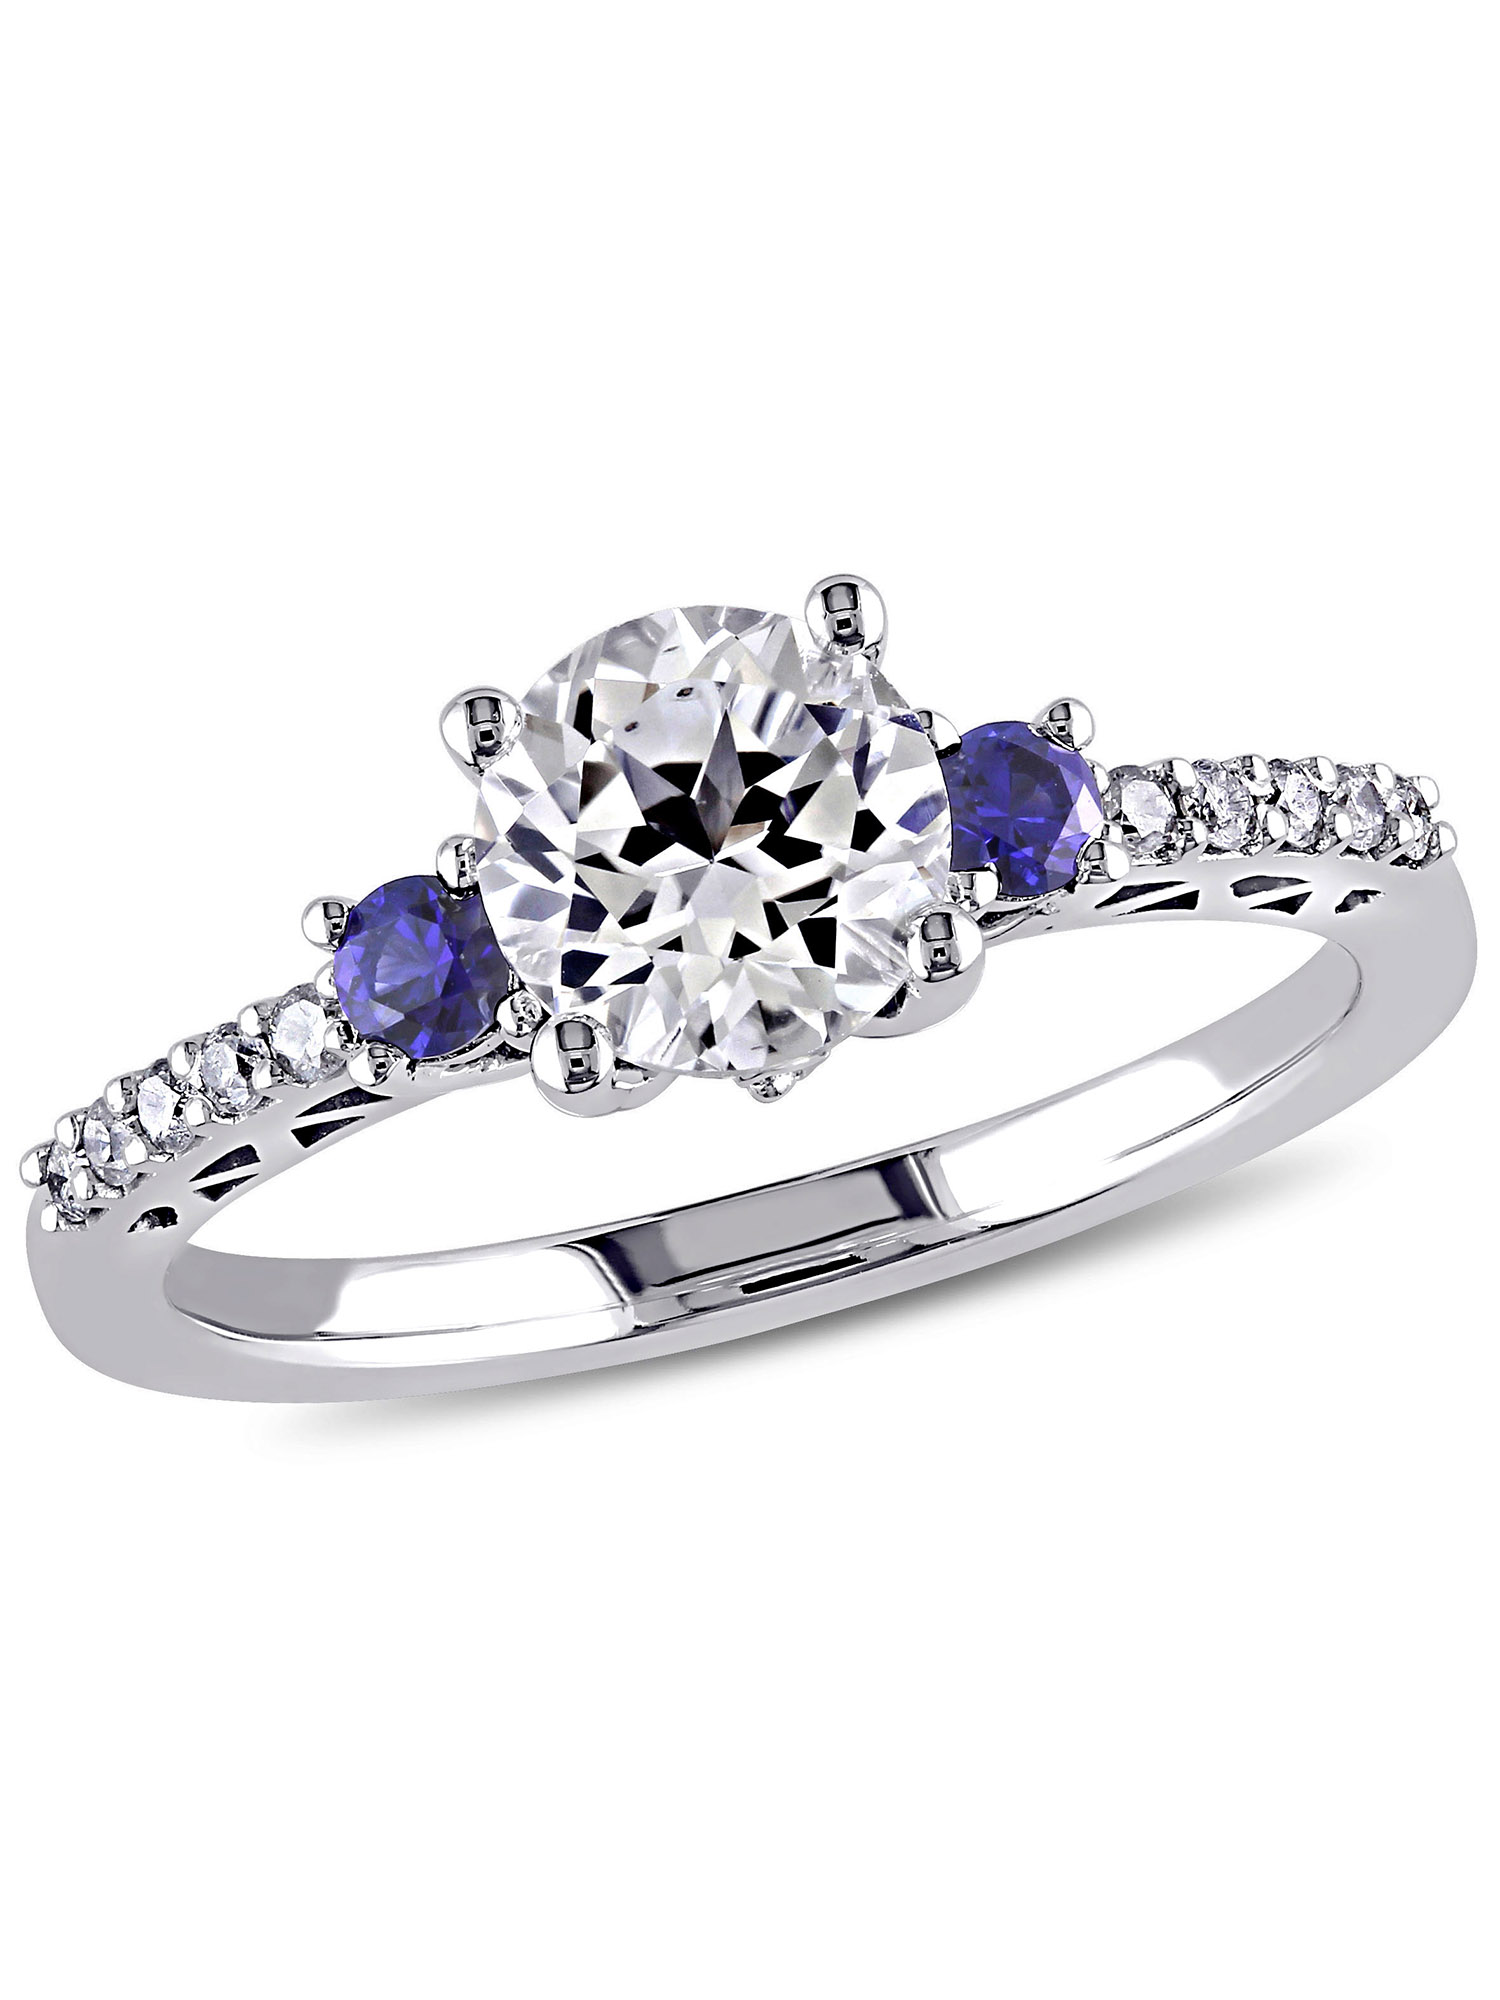 1-3/5 Carat T.G.W. Created White and Blue Sapphire and Diamond-Accent 10kt White Gold Engagement Ring